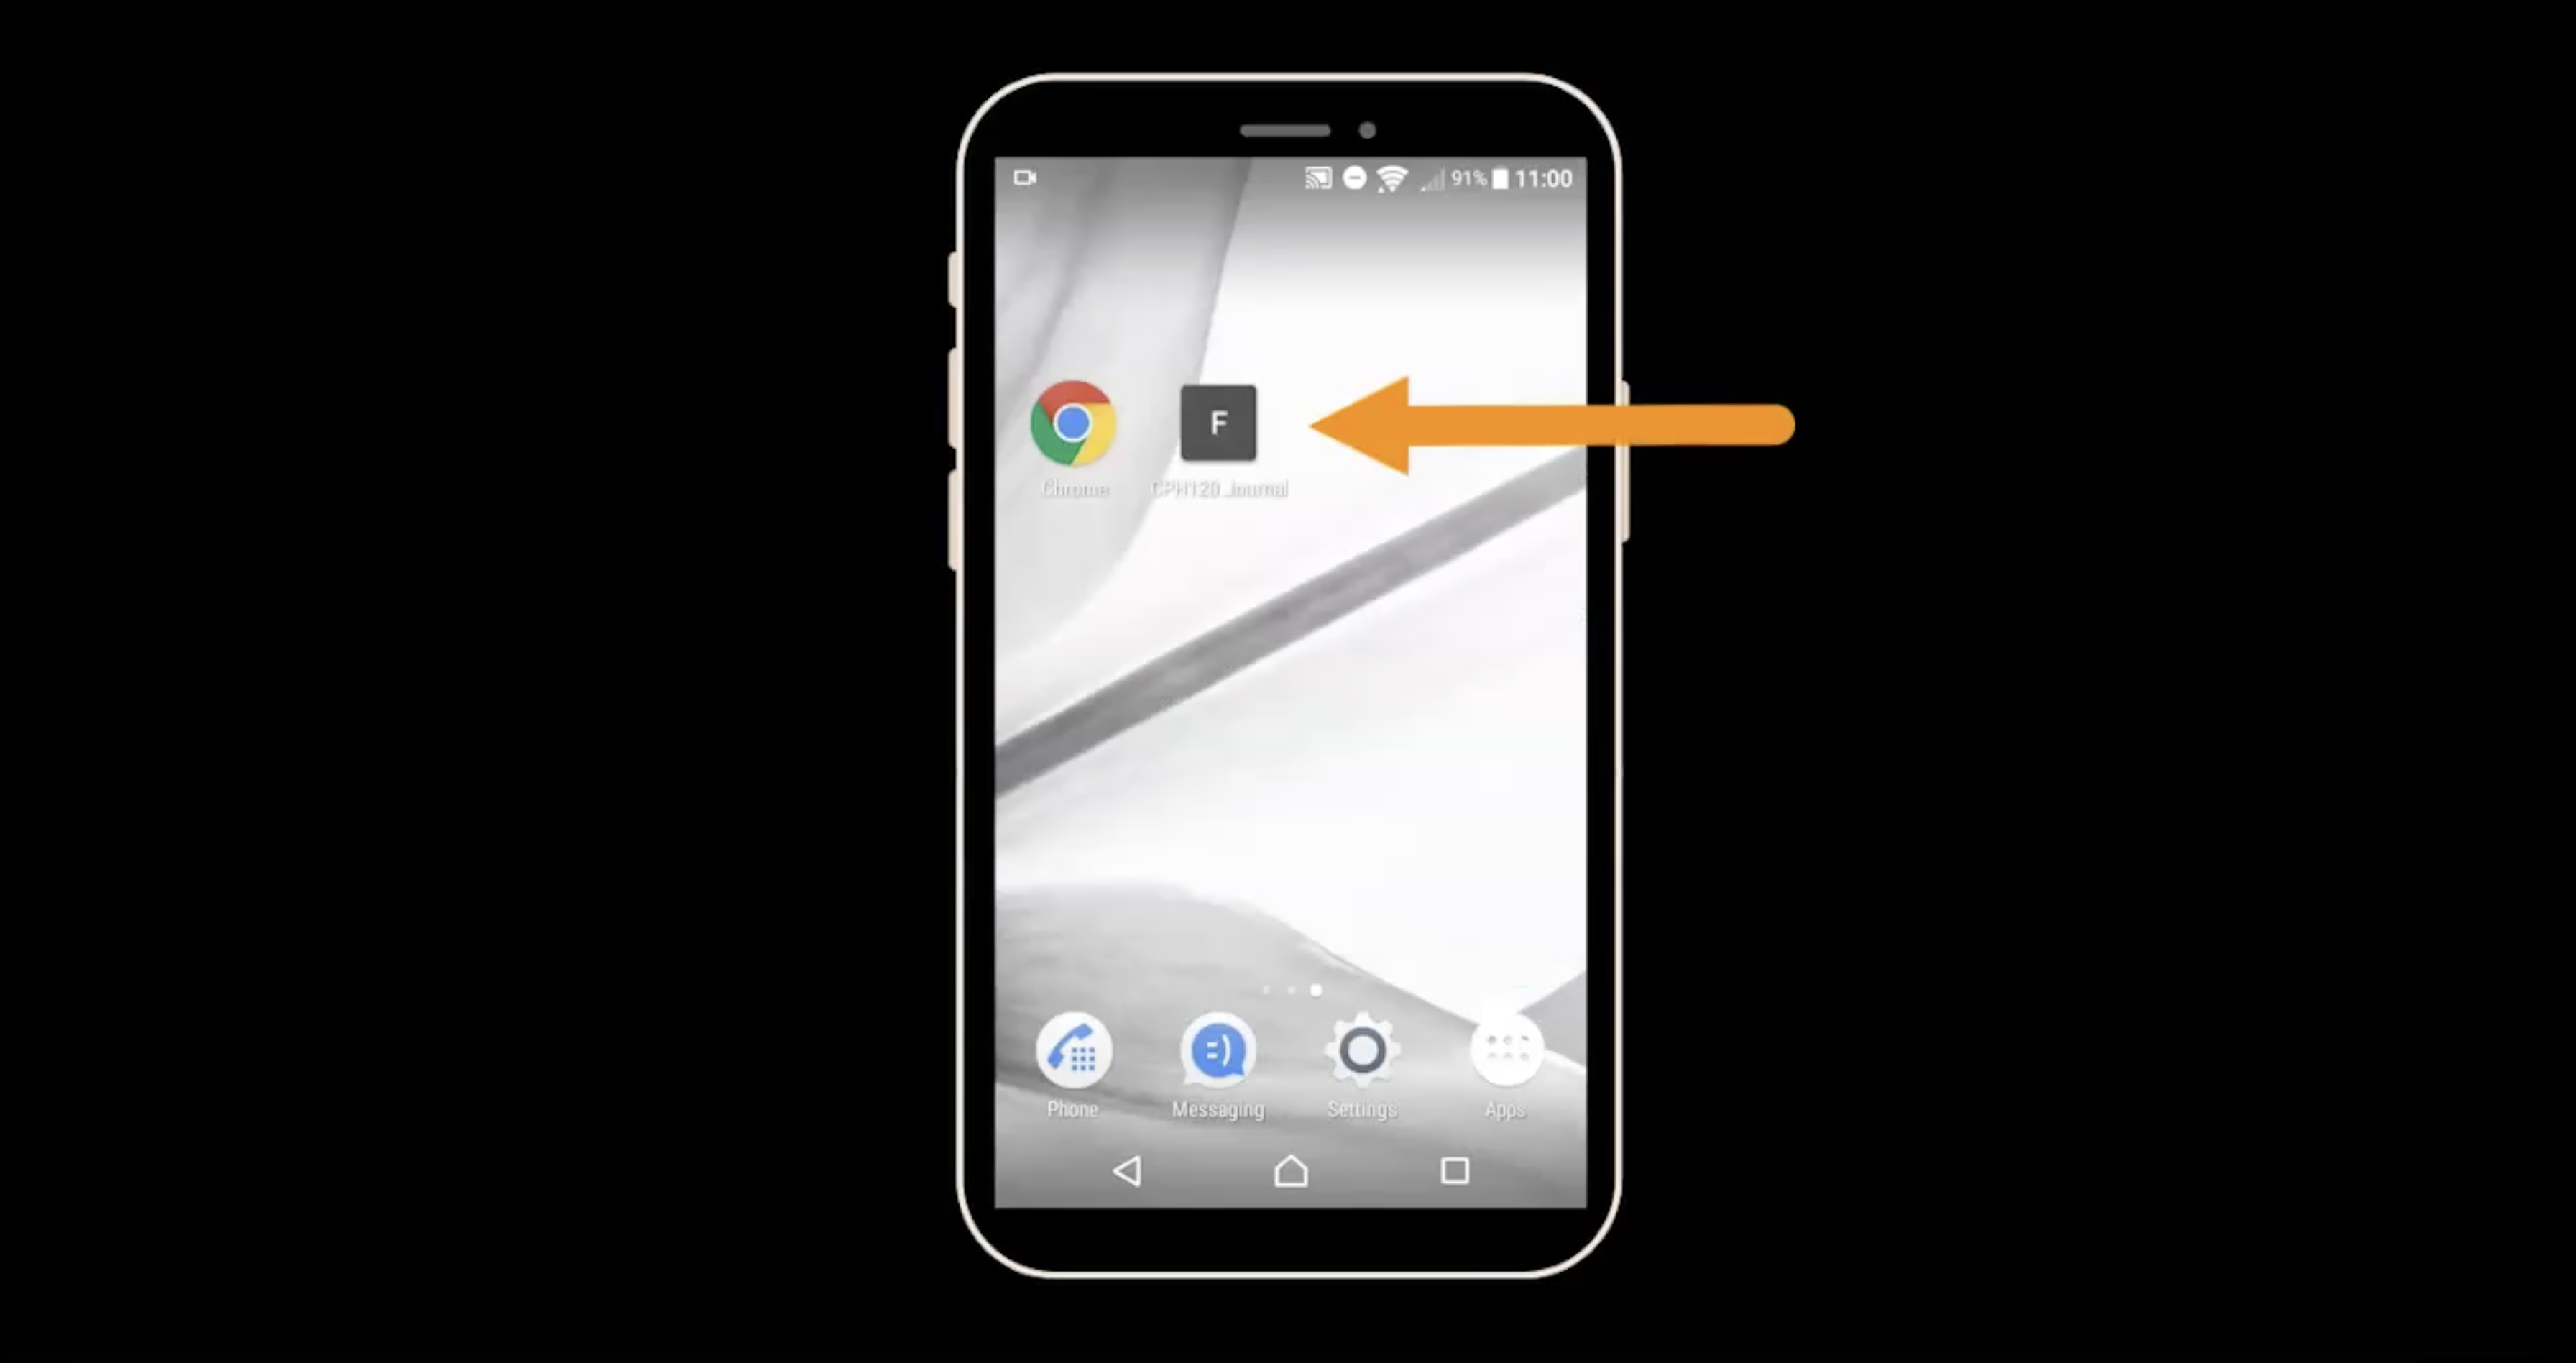 An arrow points at a desktop item on a mobile phone